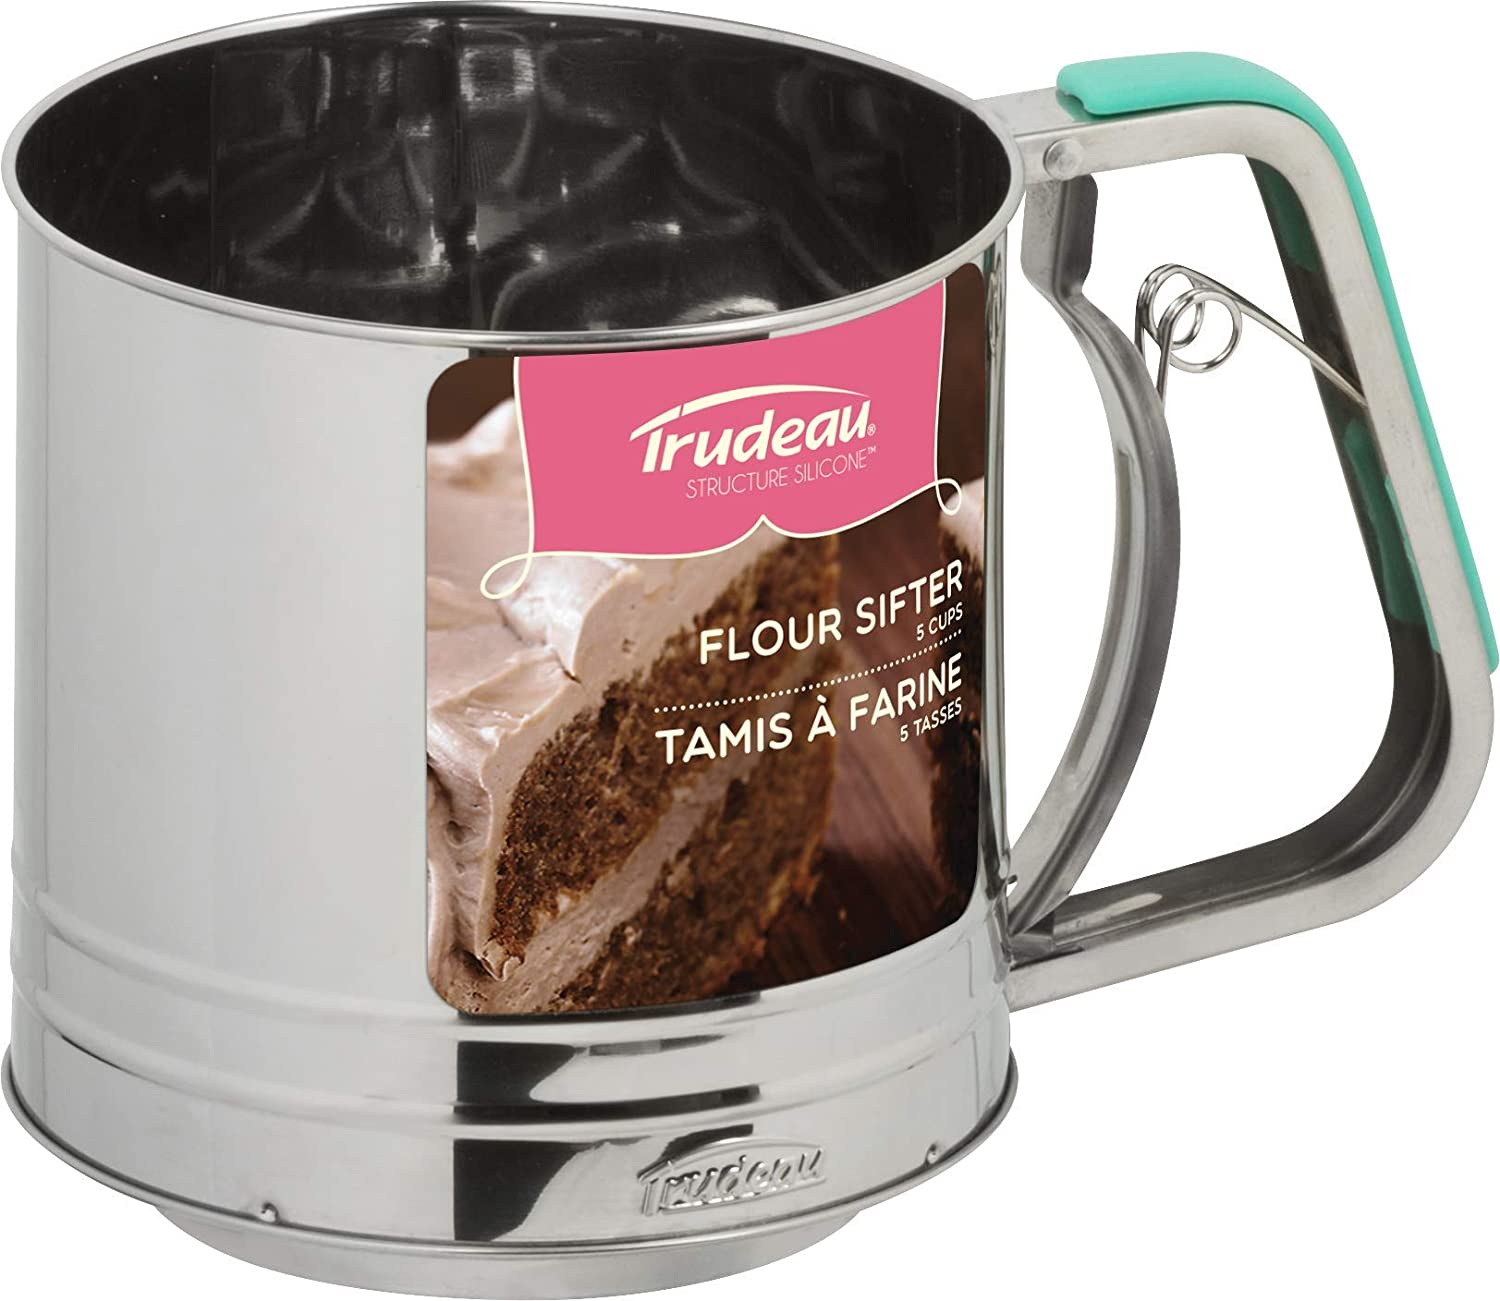 Mint Green Trudeau 9913078 Flour Sifter of Stainless Steel